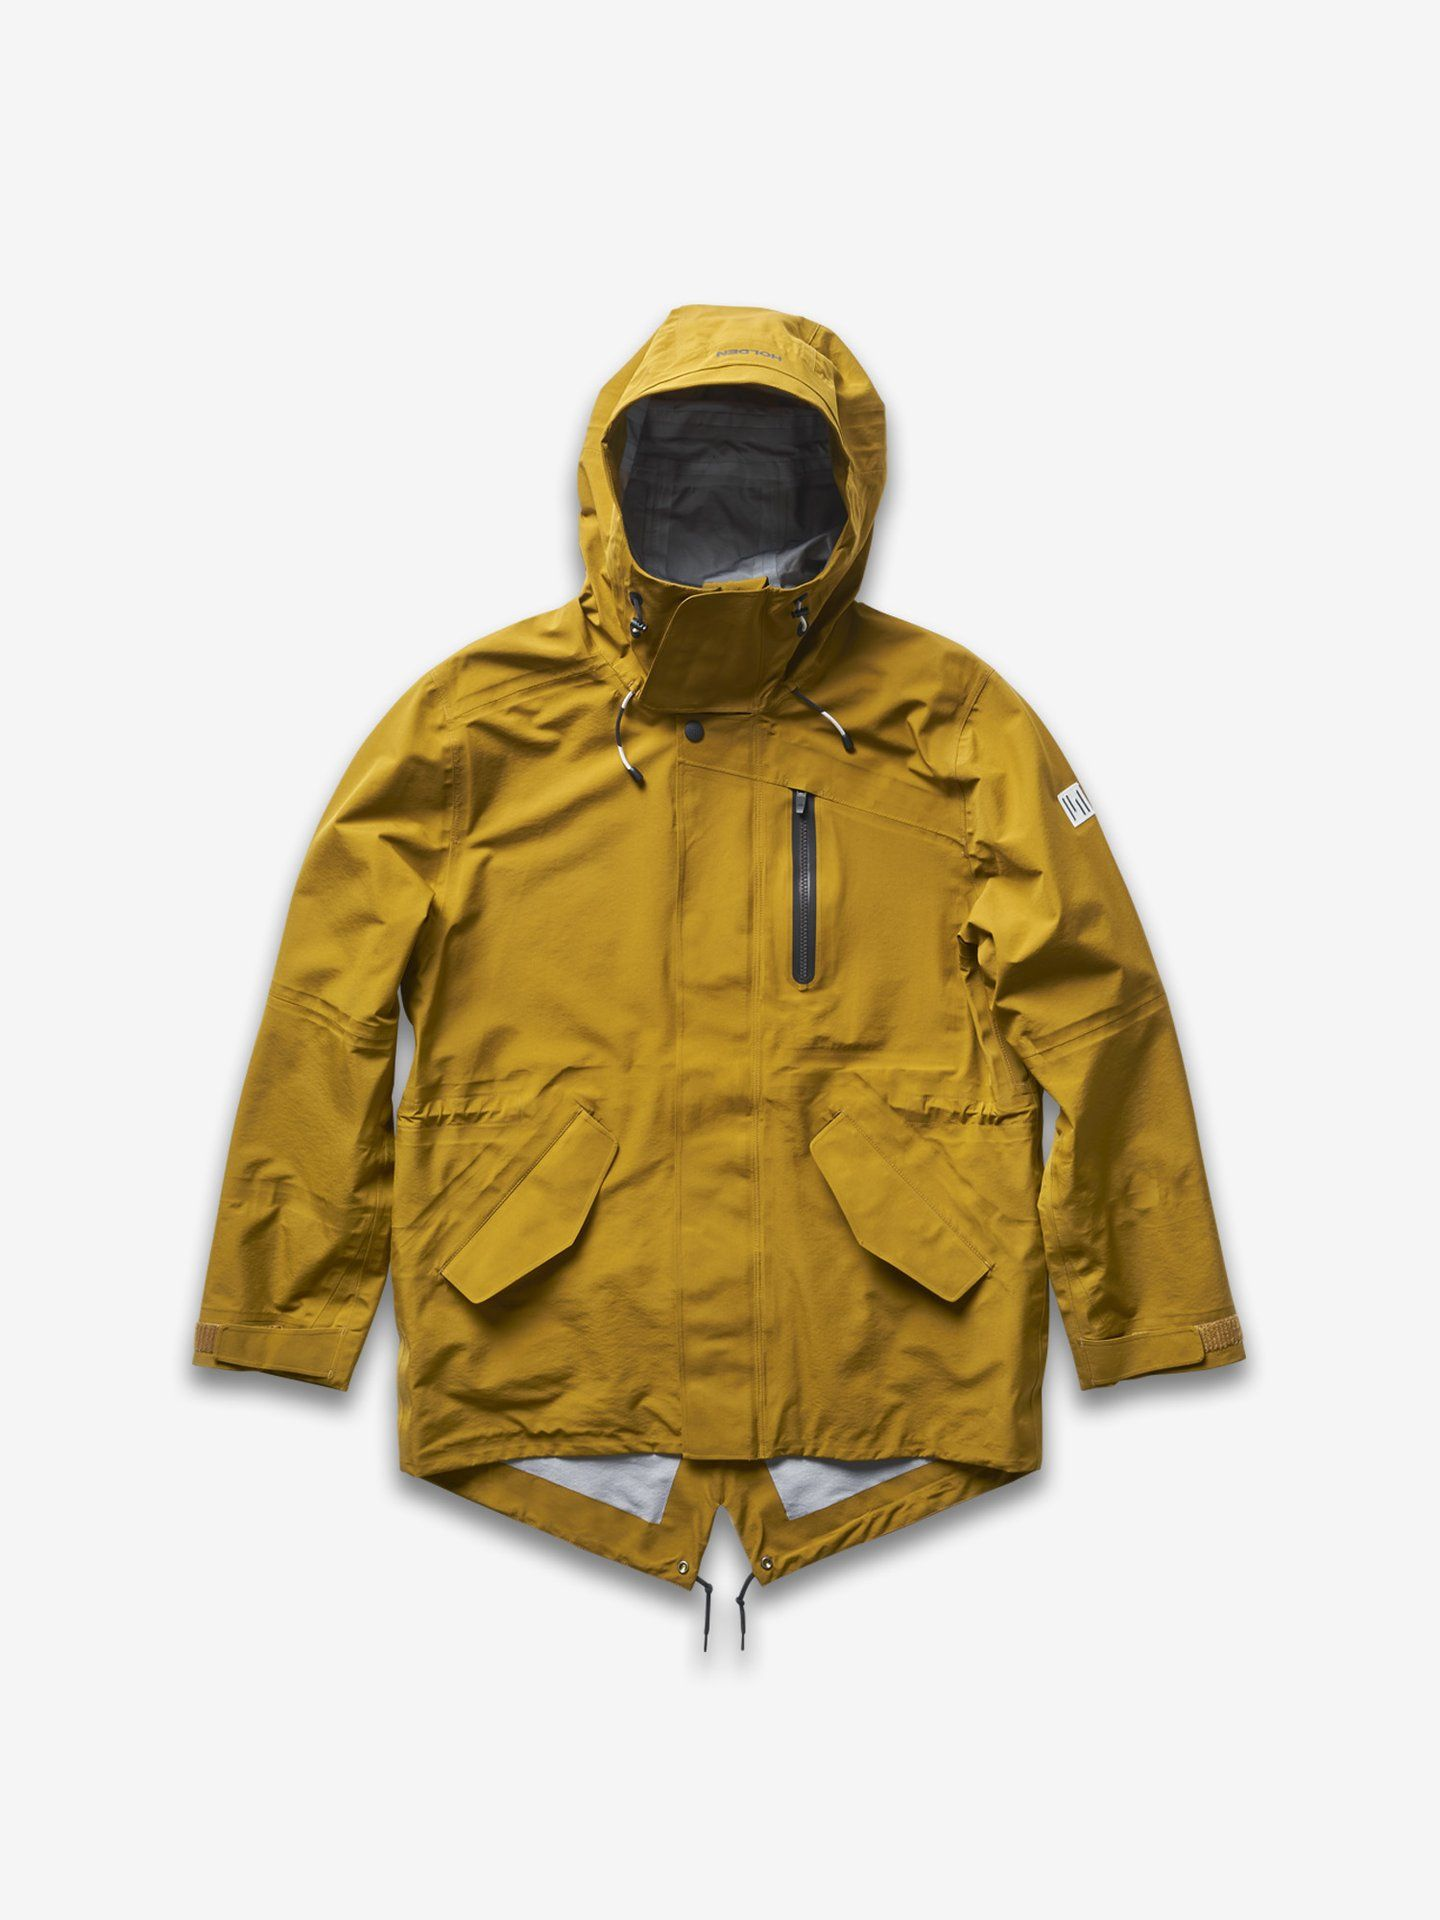 Mens Technical Jackets Holden Outerwear Holden Outerwear Waterproof Clothing Outdoor Outfit [ 1920 x 1440 Pixel ]